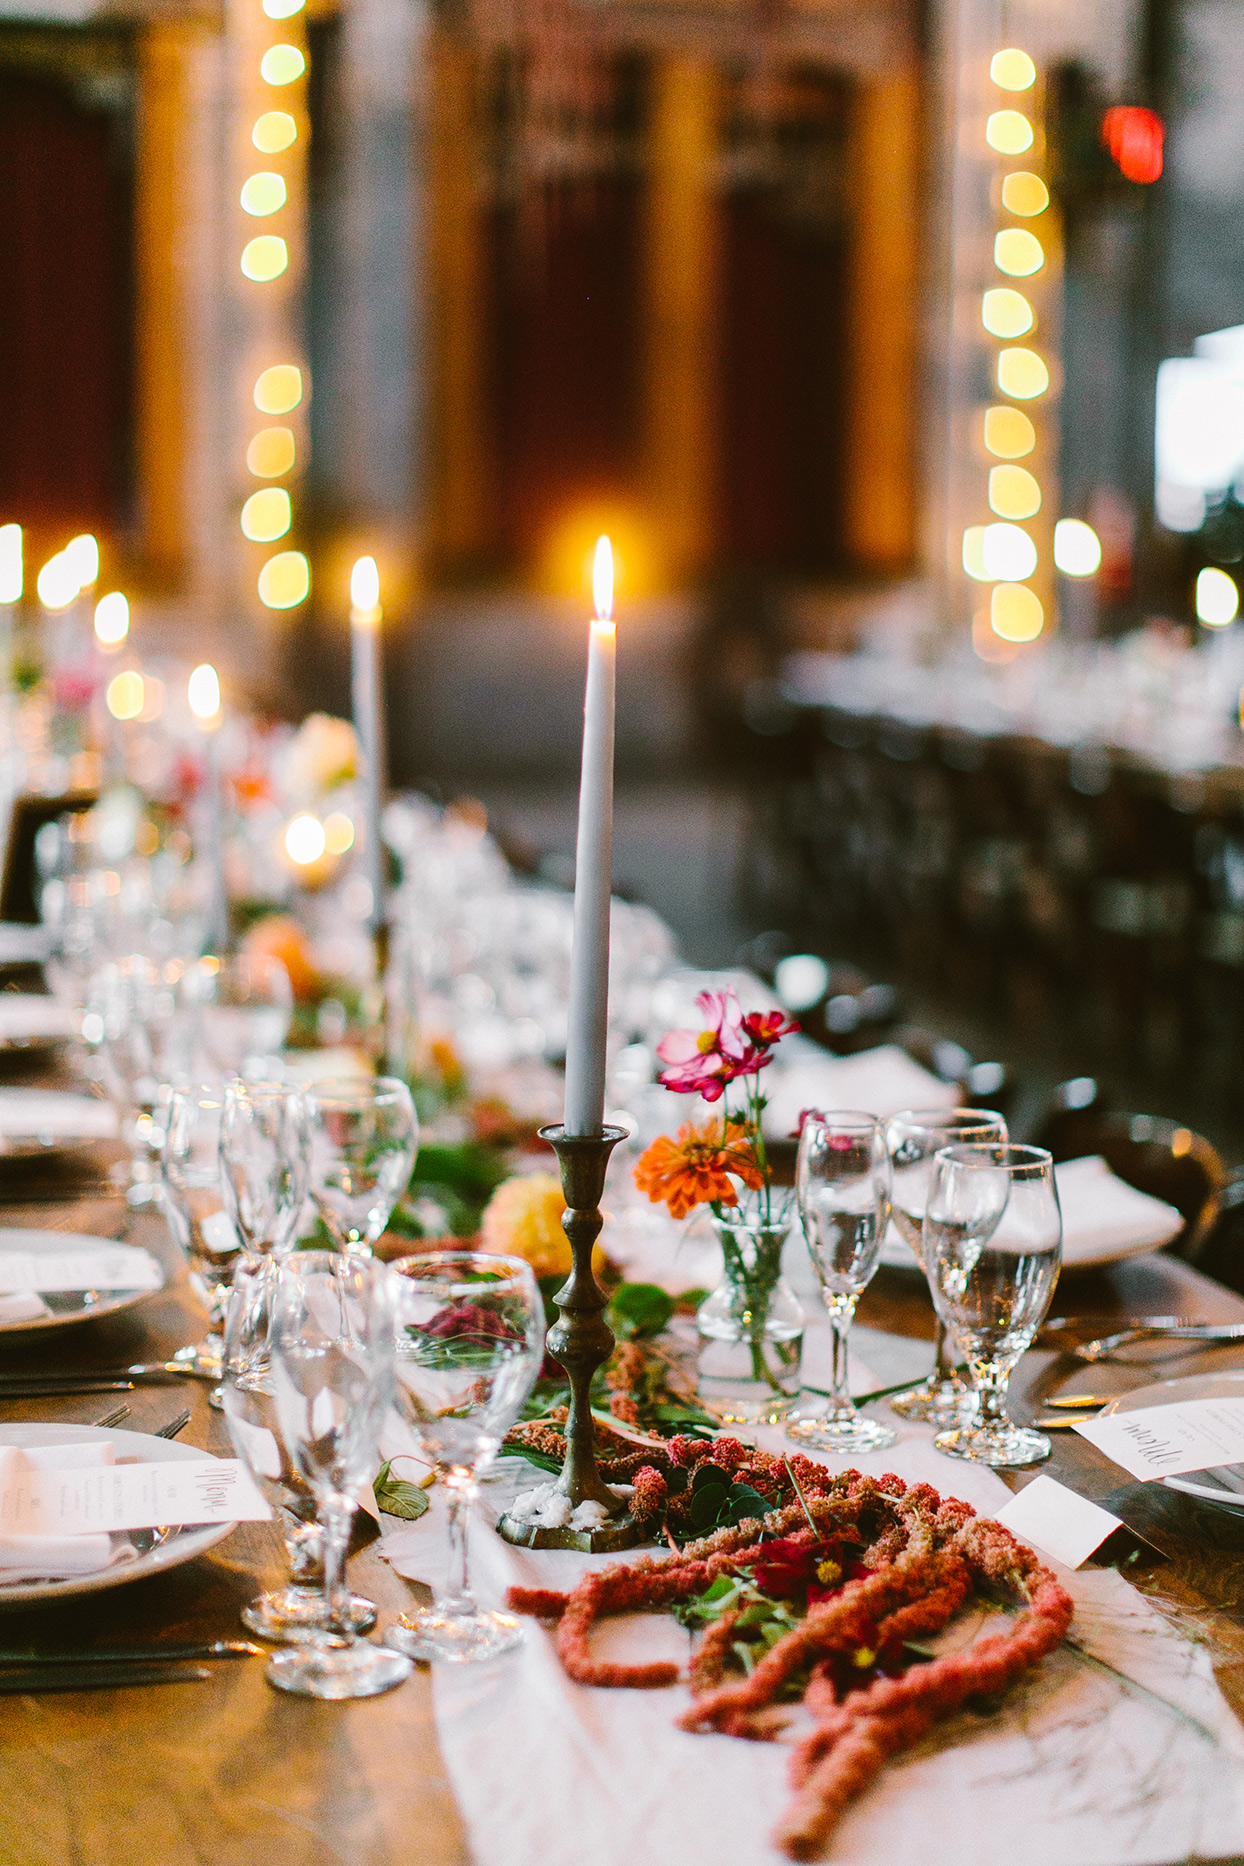 close up of wedding long table centerpiece of red flowers and candles